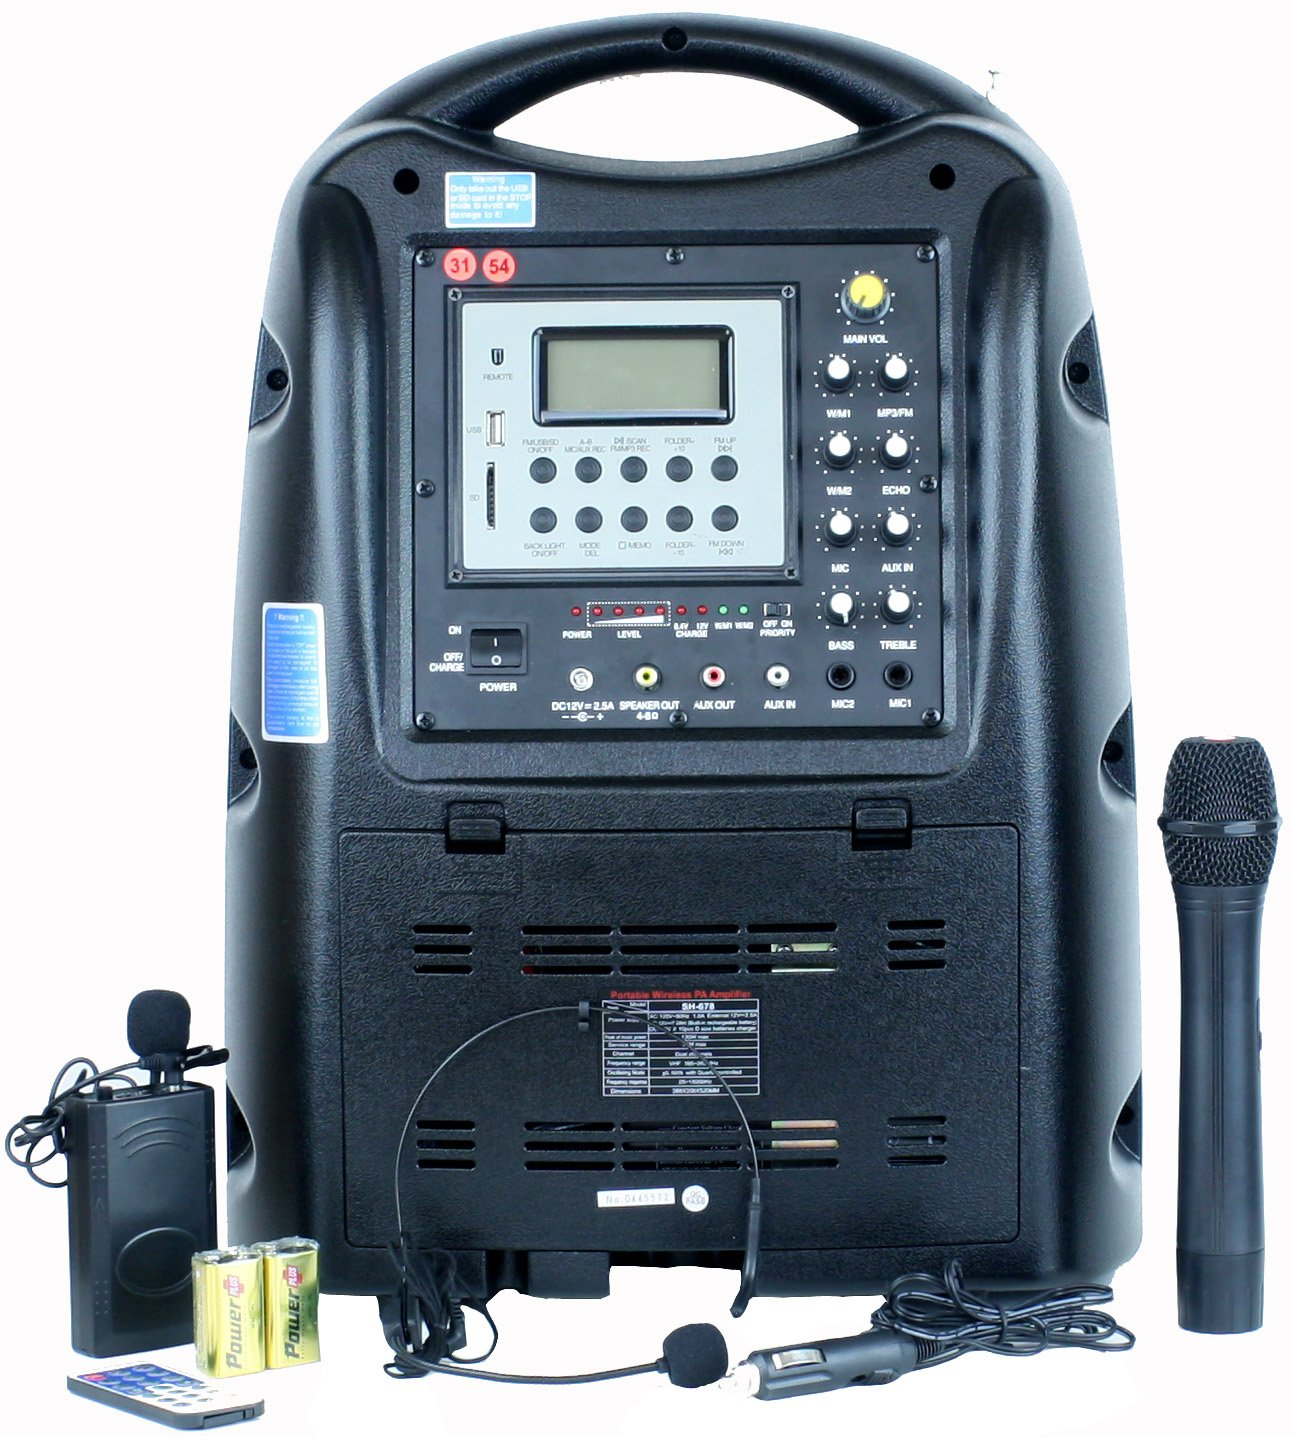 Hisonic HS678 Portable & Rechargeable 130 Watt PA (Public Address) System with Dual Wireless Microphone System & MP3 Player, Black